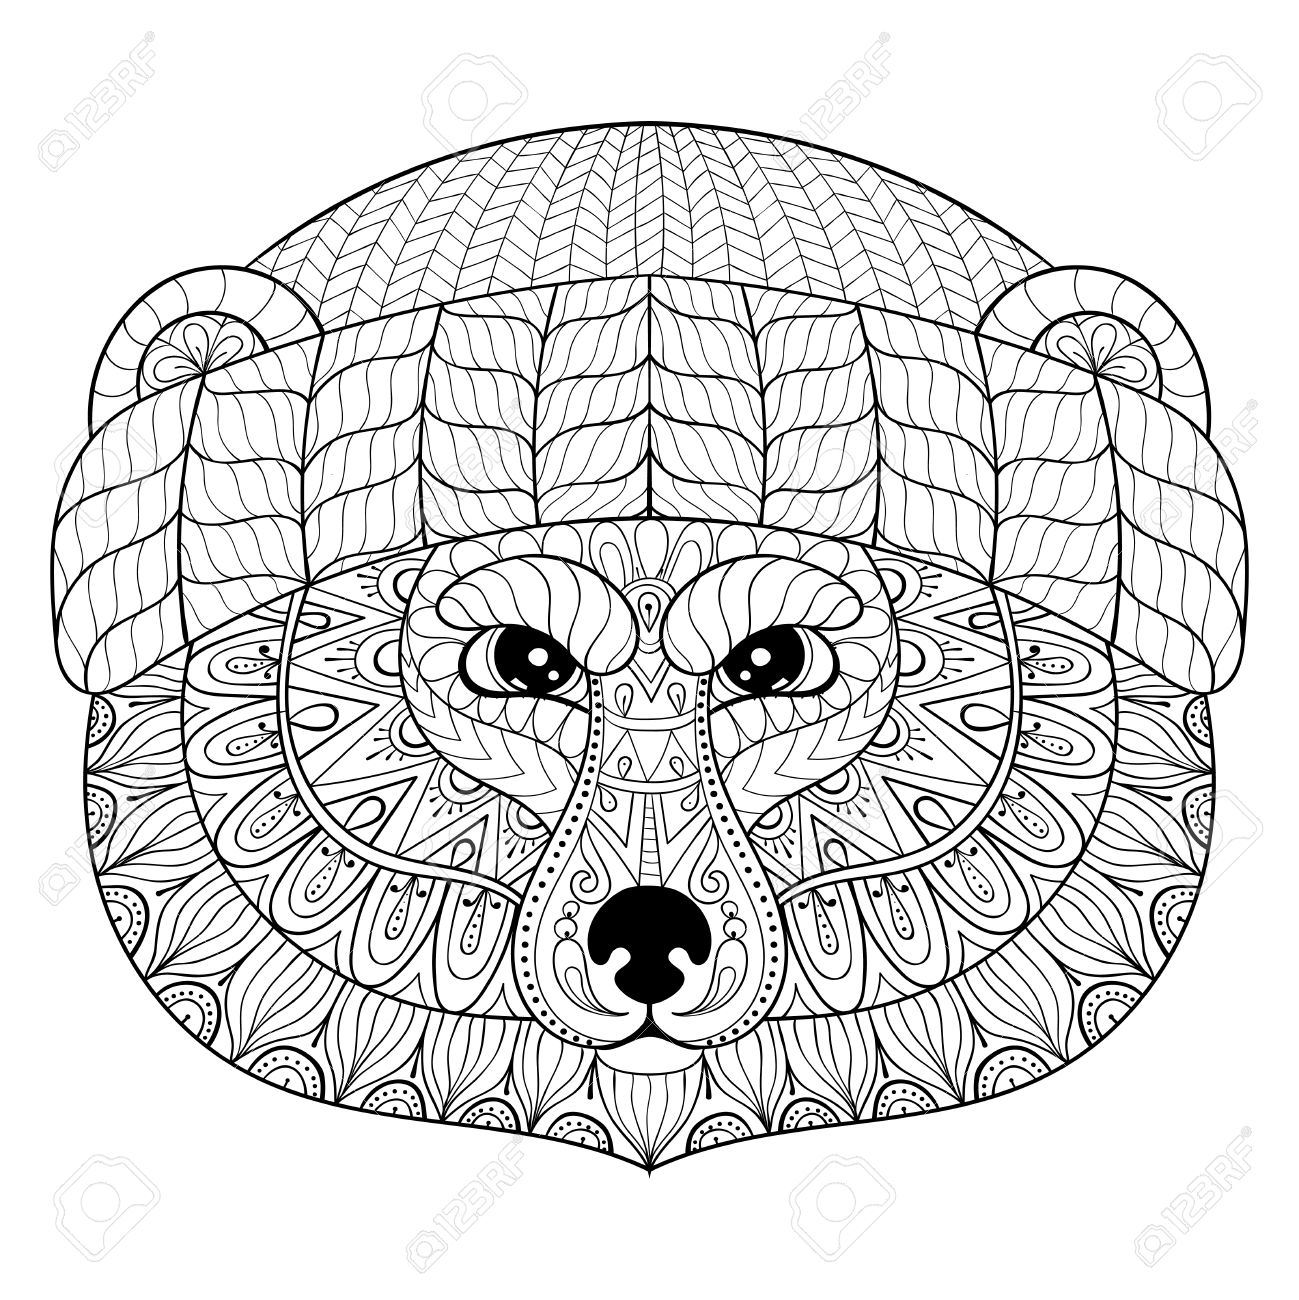 1299x1300 Adult Coloring Pages Bear Faces Free